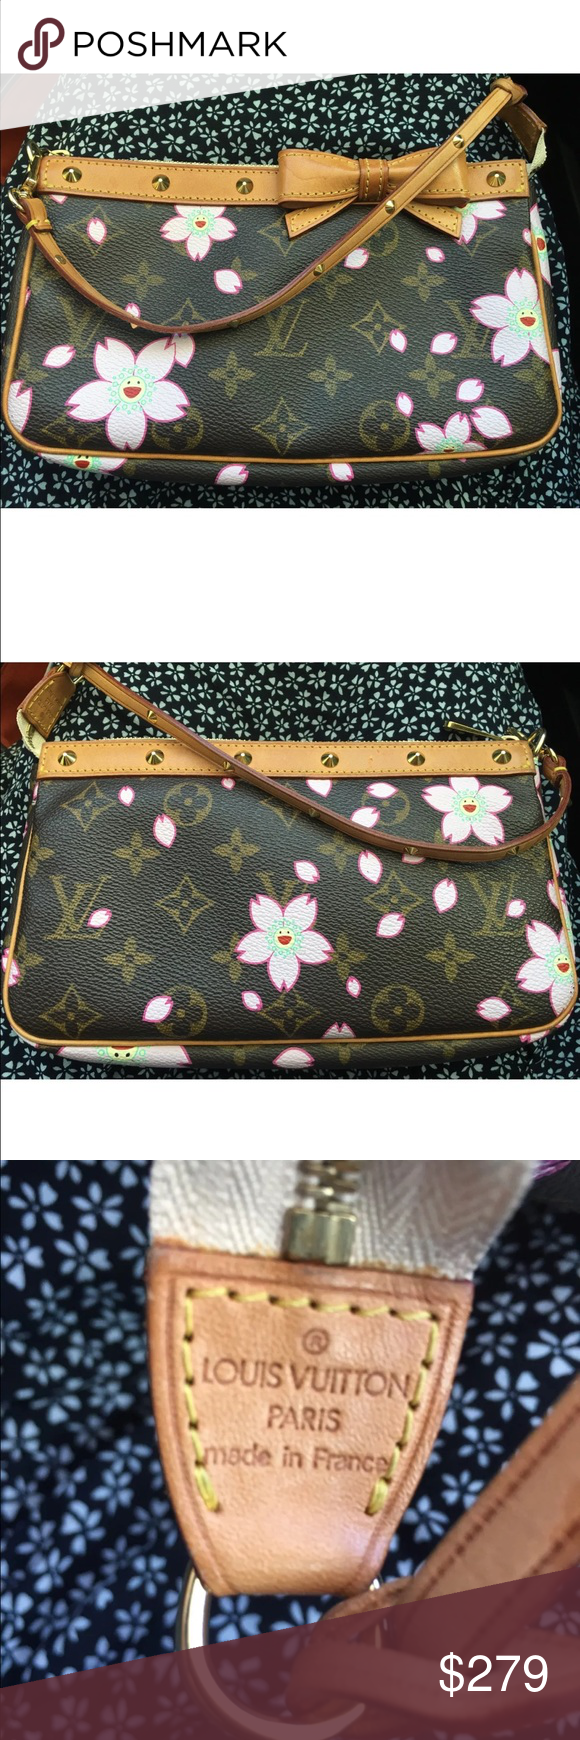 """Louis Vuitton cherry blossom pouchette 100% AUTHENTIC              2003 LIMITED EDITION      CHERRY BLOSSOM POUCHETTE   - BY LOUIS VUITTON WITH JAPANESE ARTIST, TAKASHI MURAKAMI - MONOGRAM CANVAS /CHERRY BLOSSOM DESIGN - GOLD TONE STUDS, AND A LEATHER BOW ON THE FRONT  - ZIP CLOSURE - LINED In BEIGE SUEDE - DATE CODE AR0023 MEASURES · 8.5""""LONG · 5 """"HIGH · 1""""DEEP - 6"""" STRAP -Preowned great condition. Leather has patina color, bow  has a water spot Corners have no exposed piping -Minor…"""